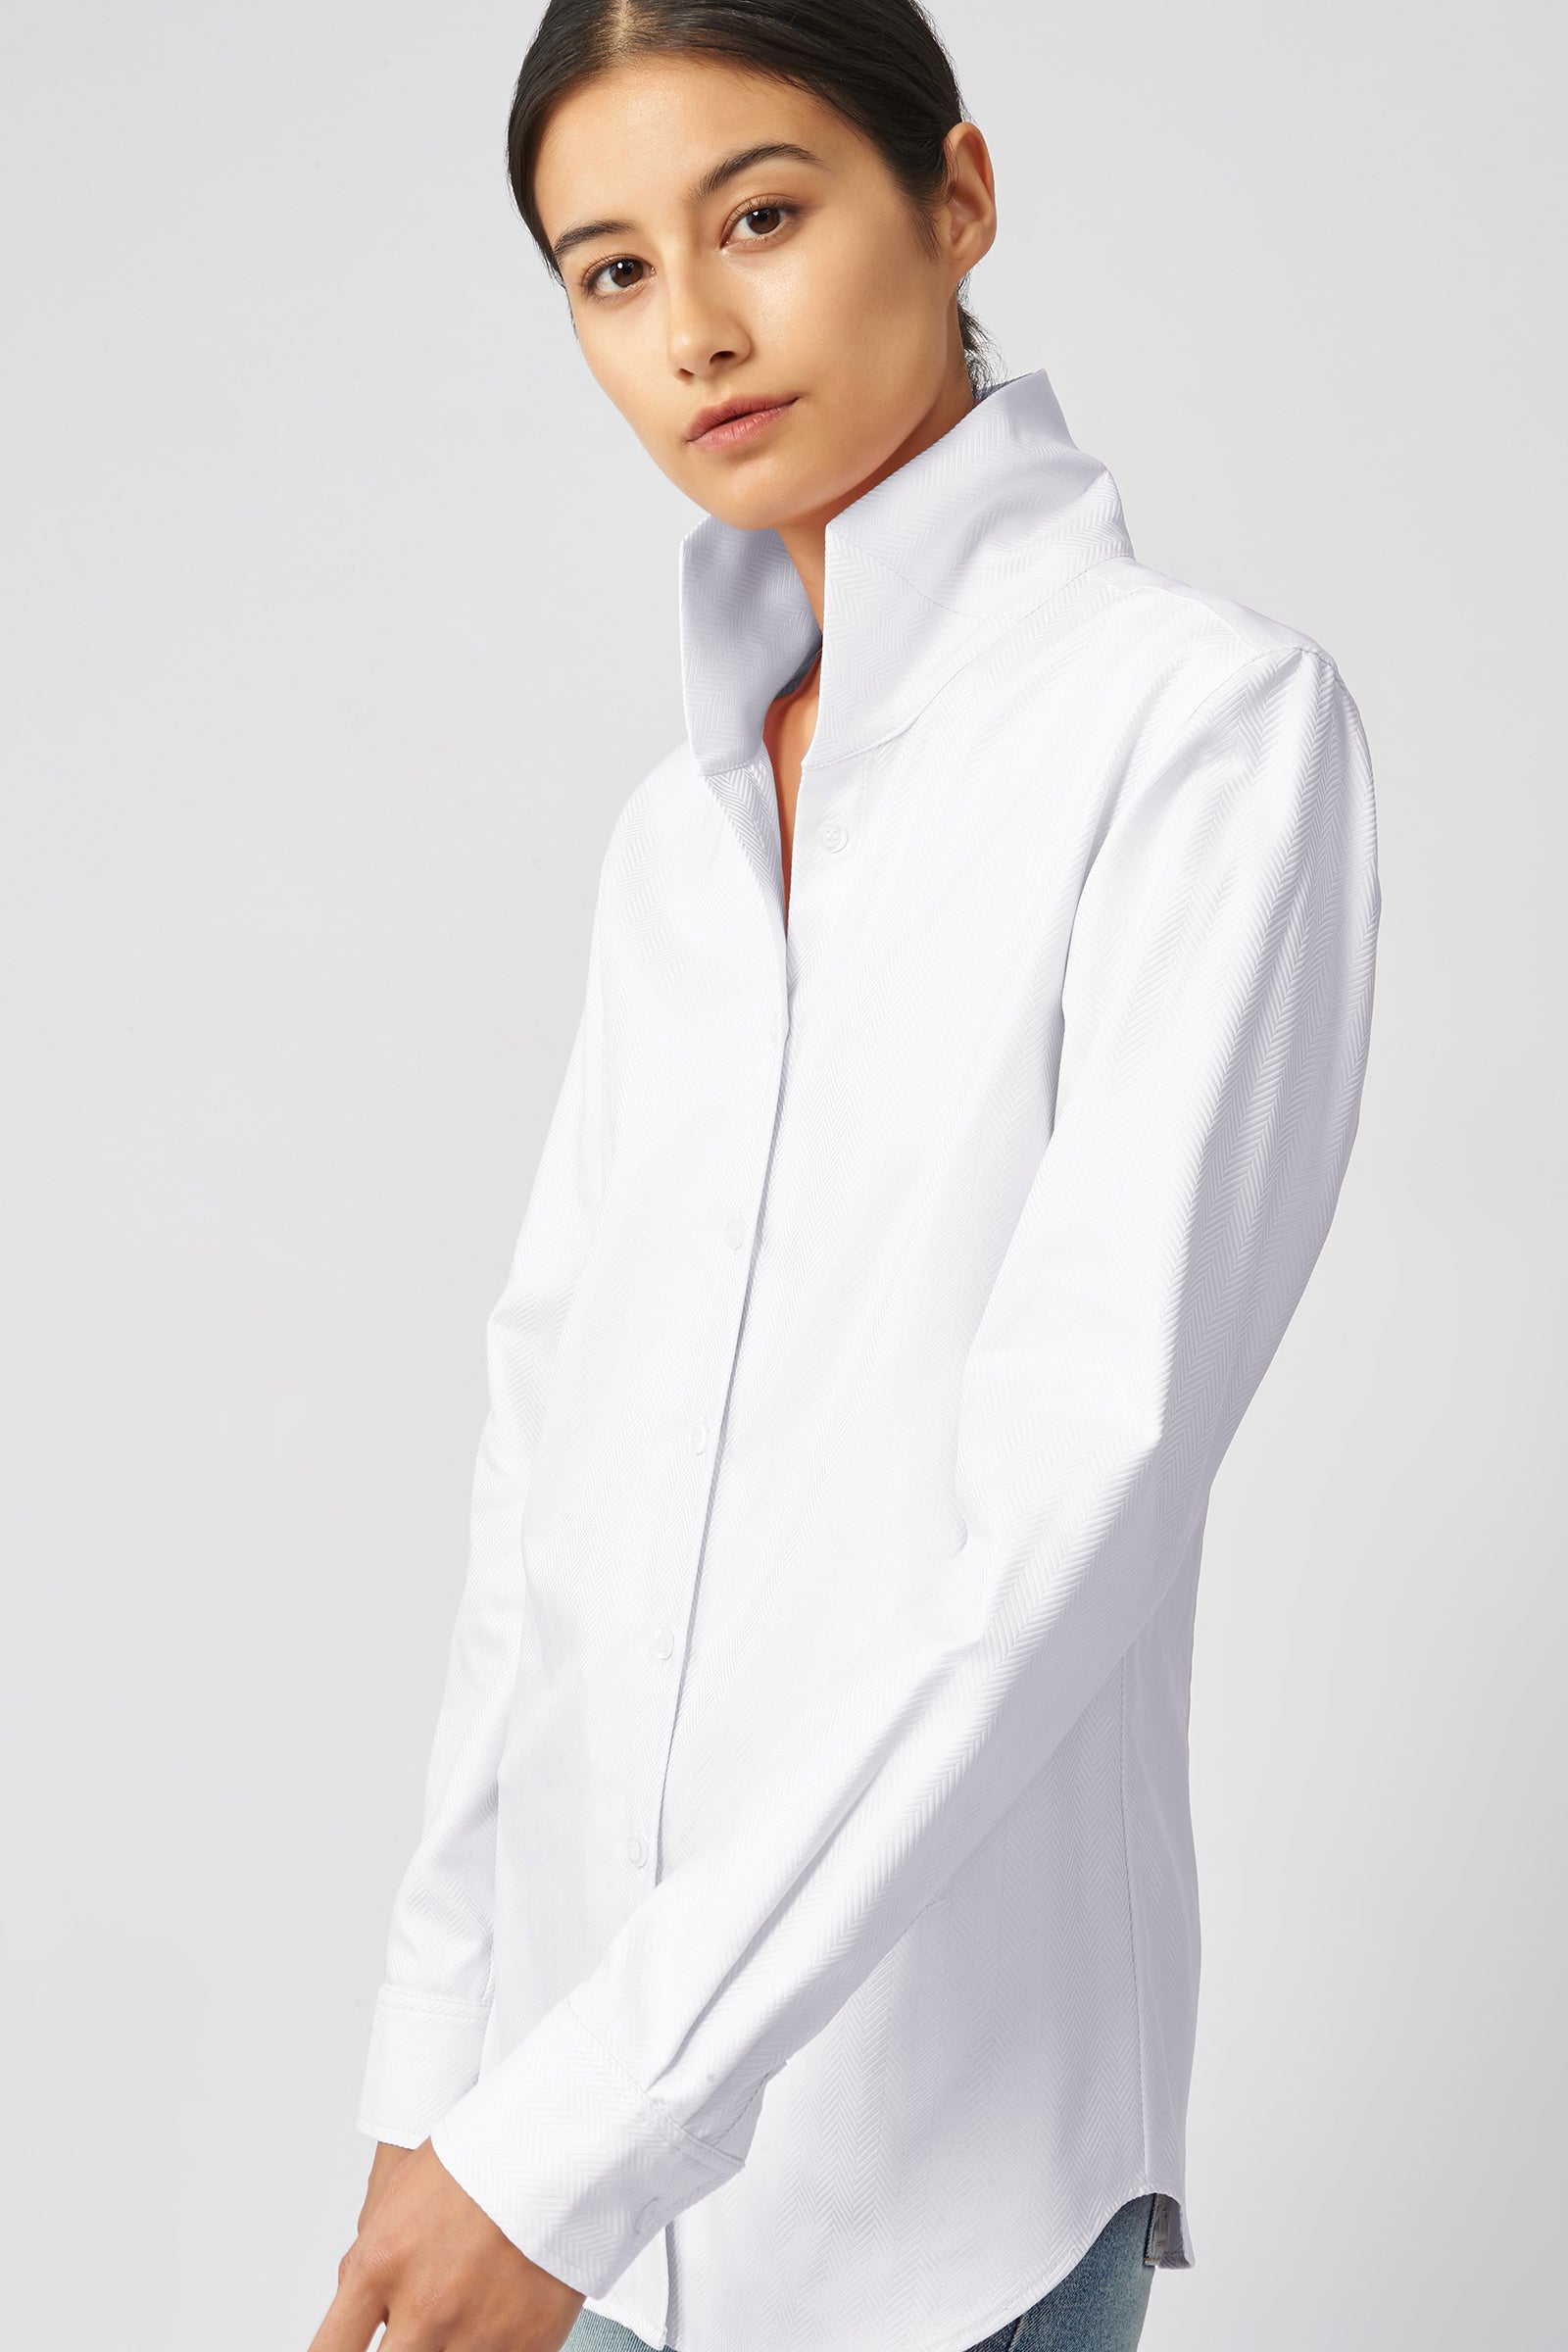 Kal Rieman Ginna Tailored Shirt in White Herringbone on Model Front Detail View